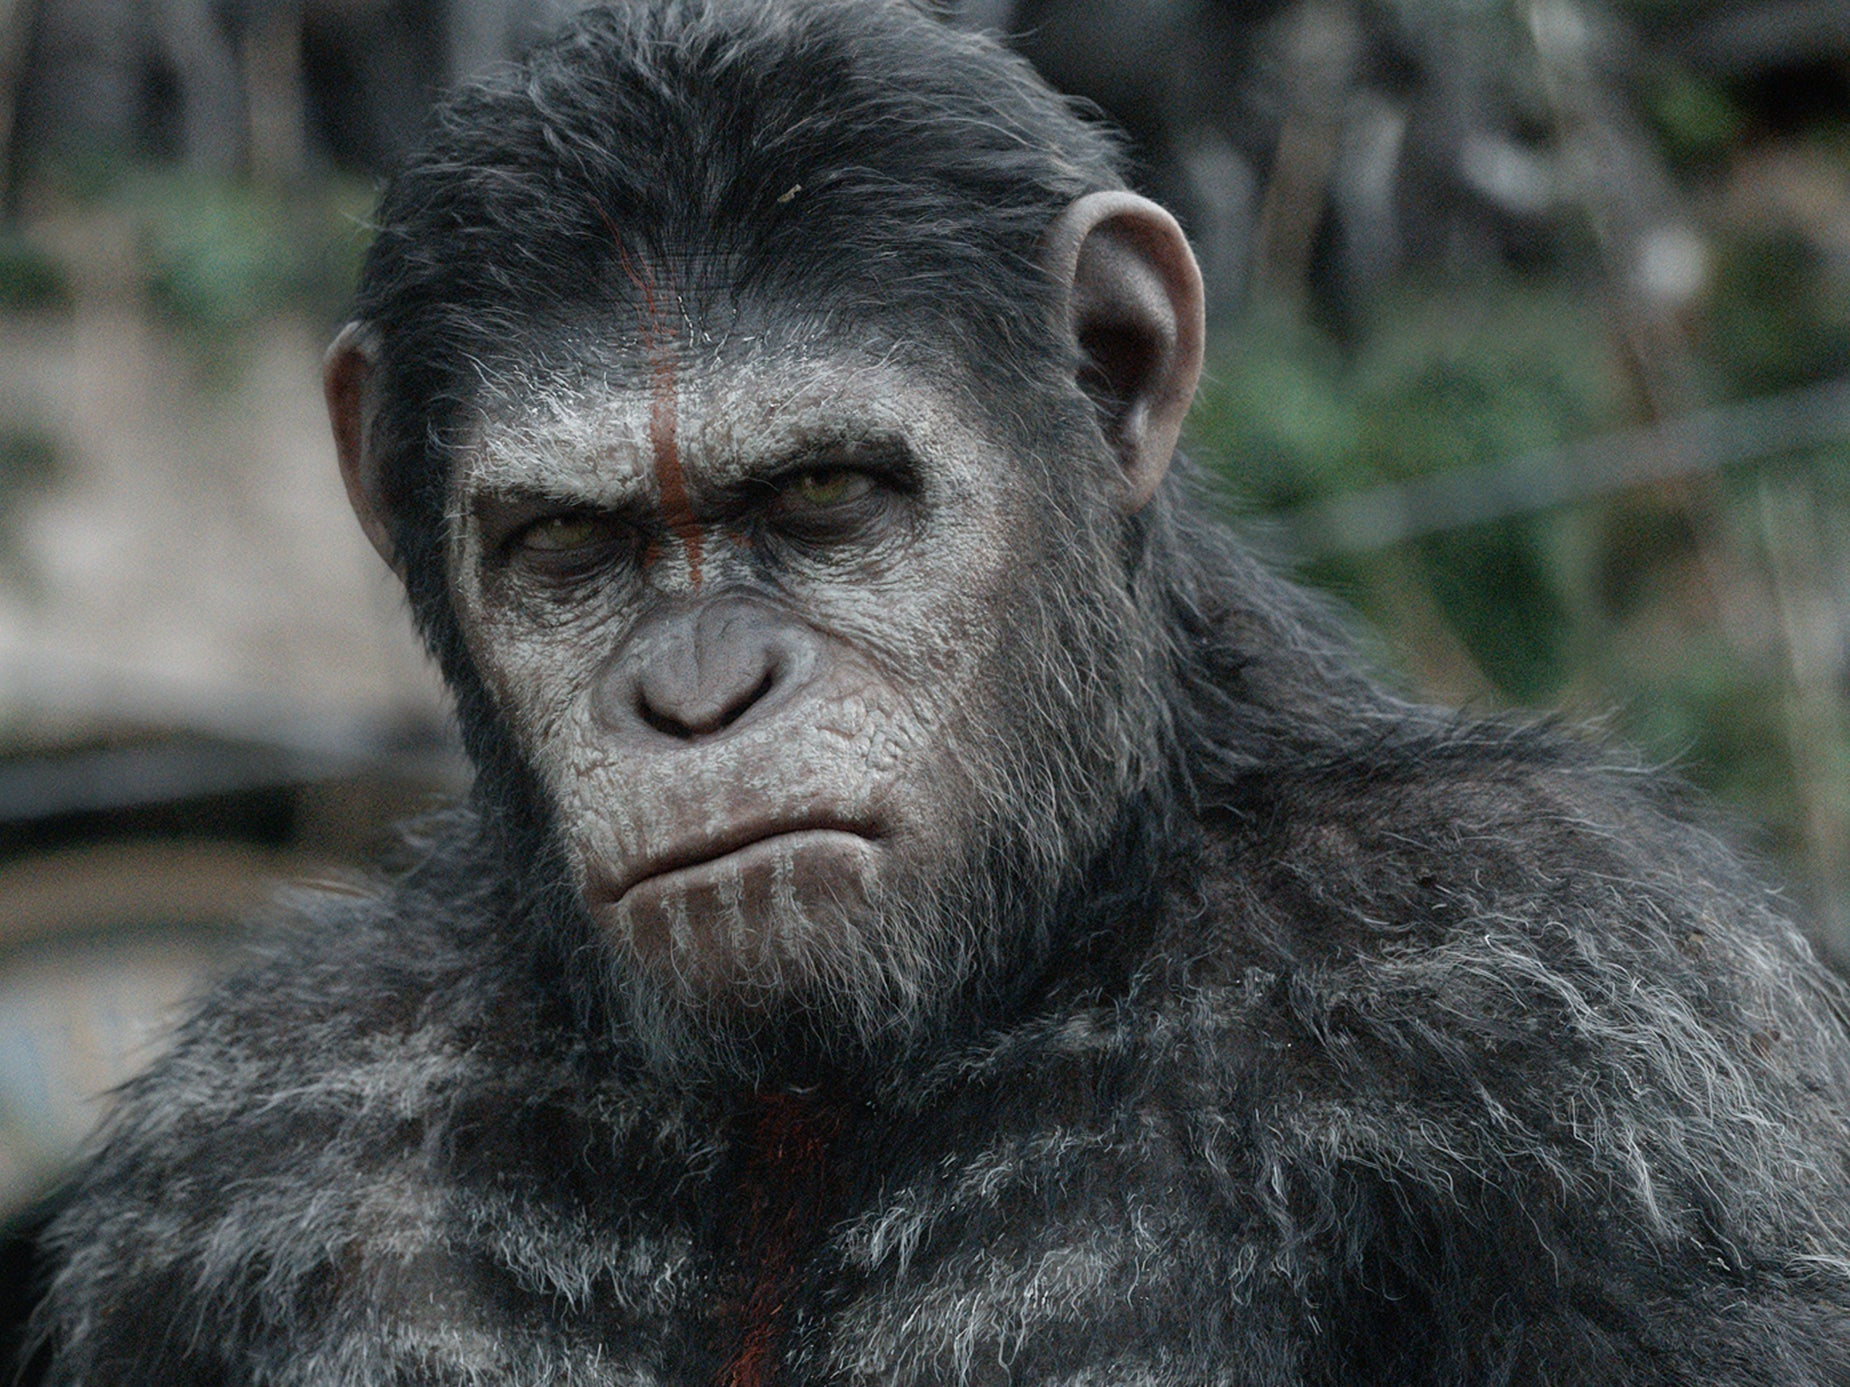 Planet of the Apes fans aren't happy with reports new film will be reboot